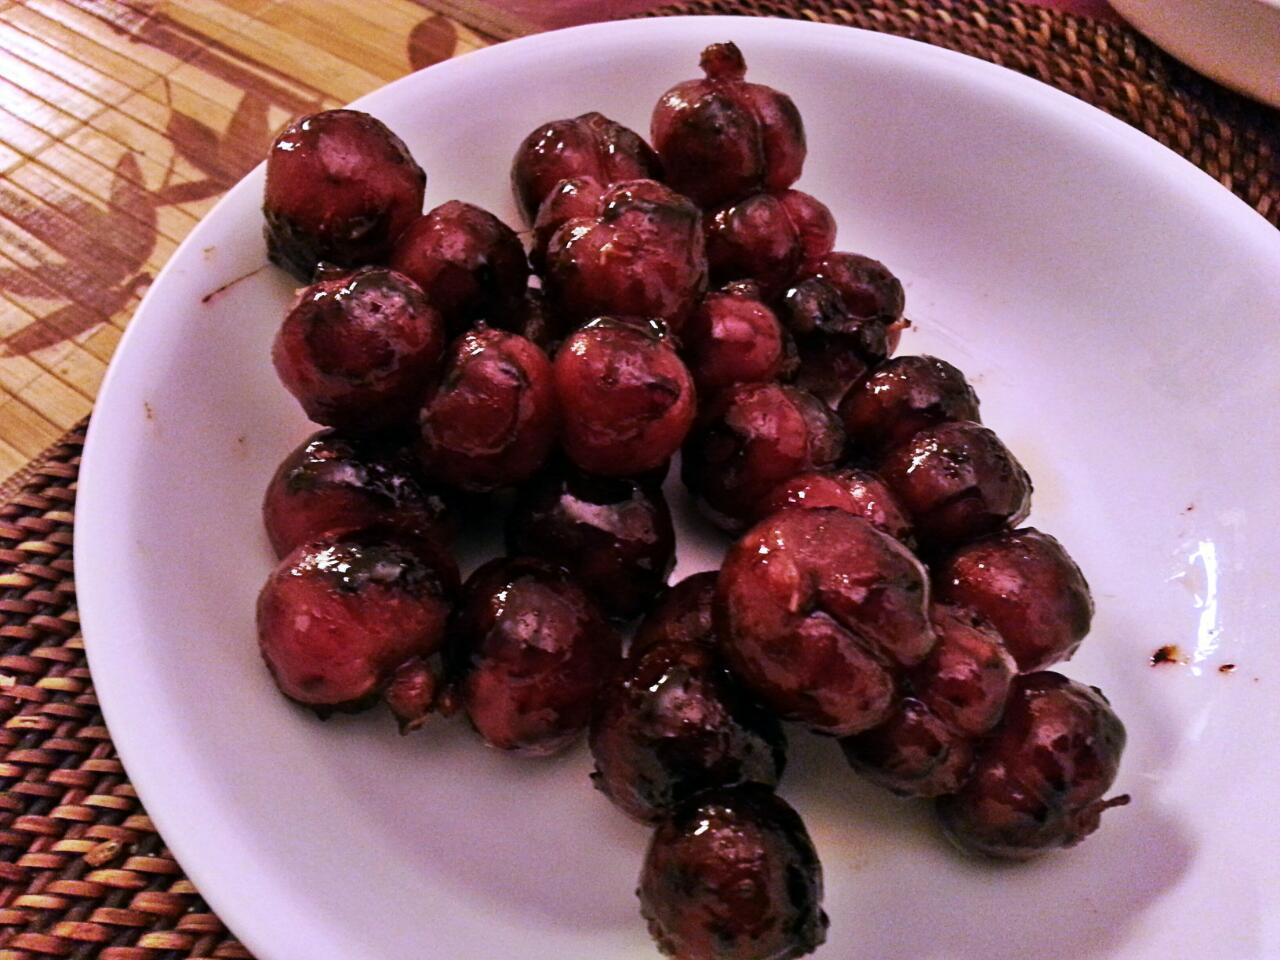 #FilipinoEats Cebu style chorizo look like roasted cherries.